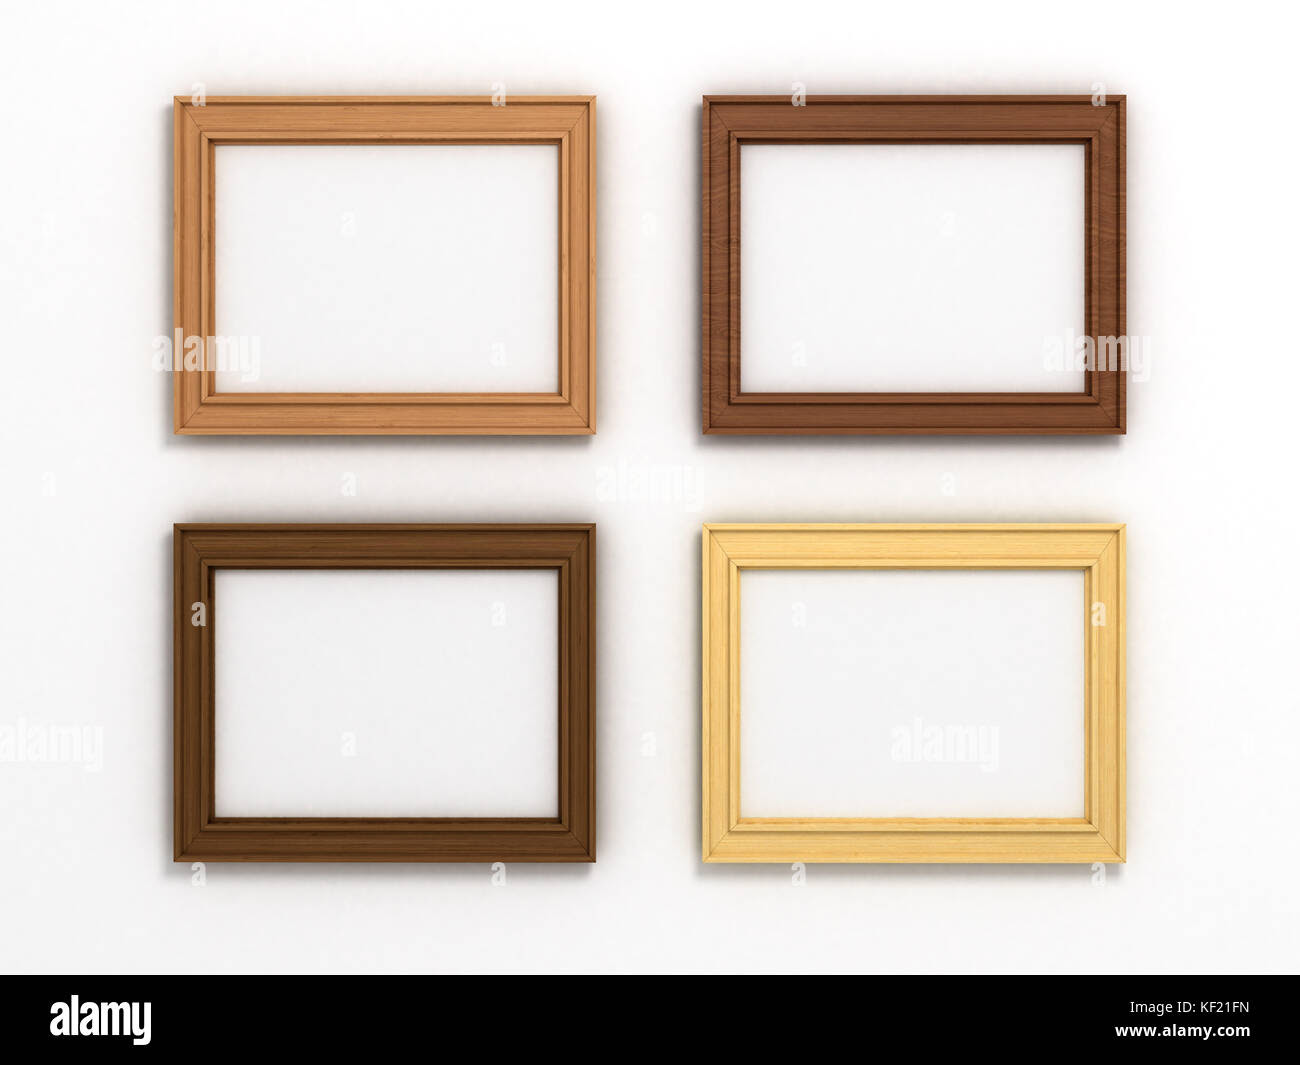 Set Of Multicolored Wooden Horizontal Frames Of Different Sizes On A